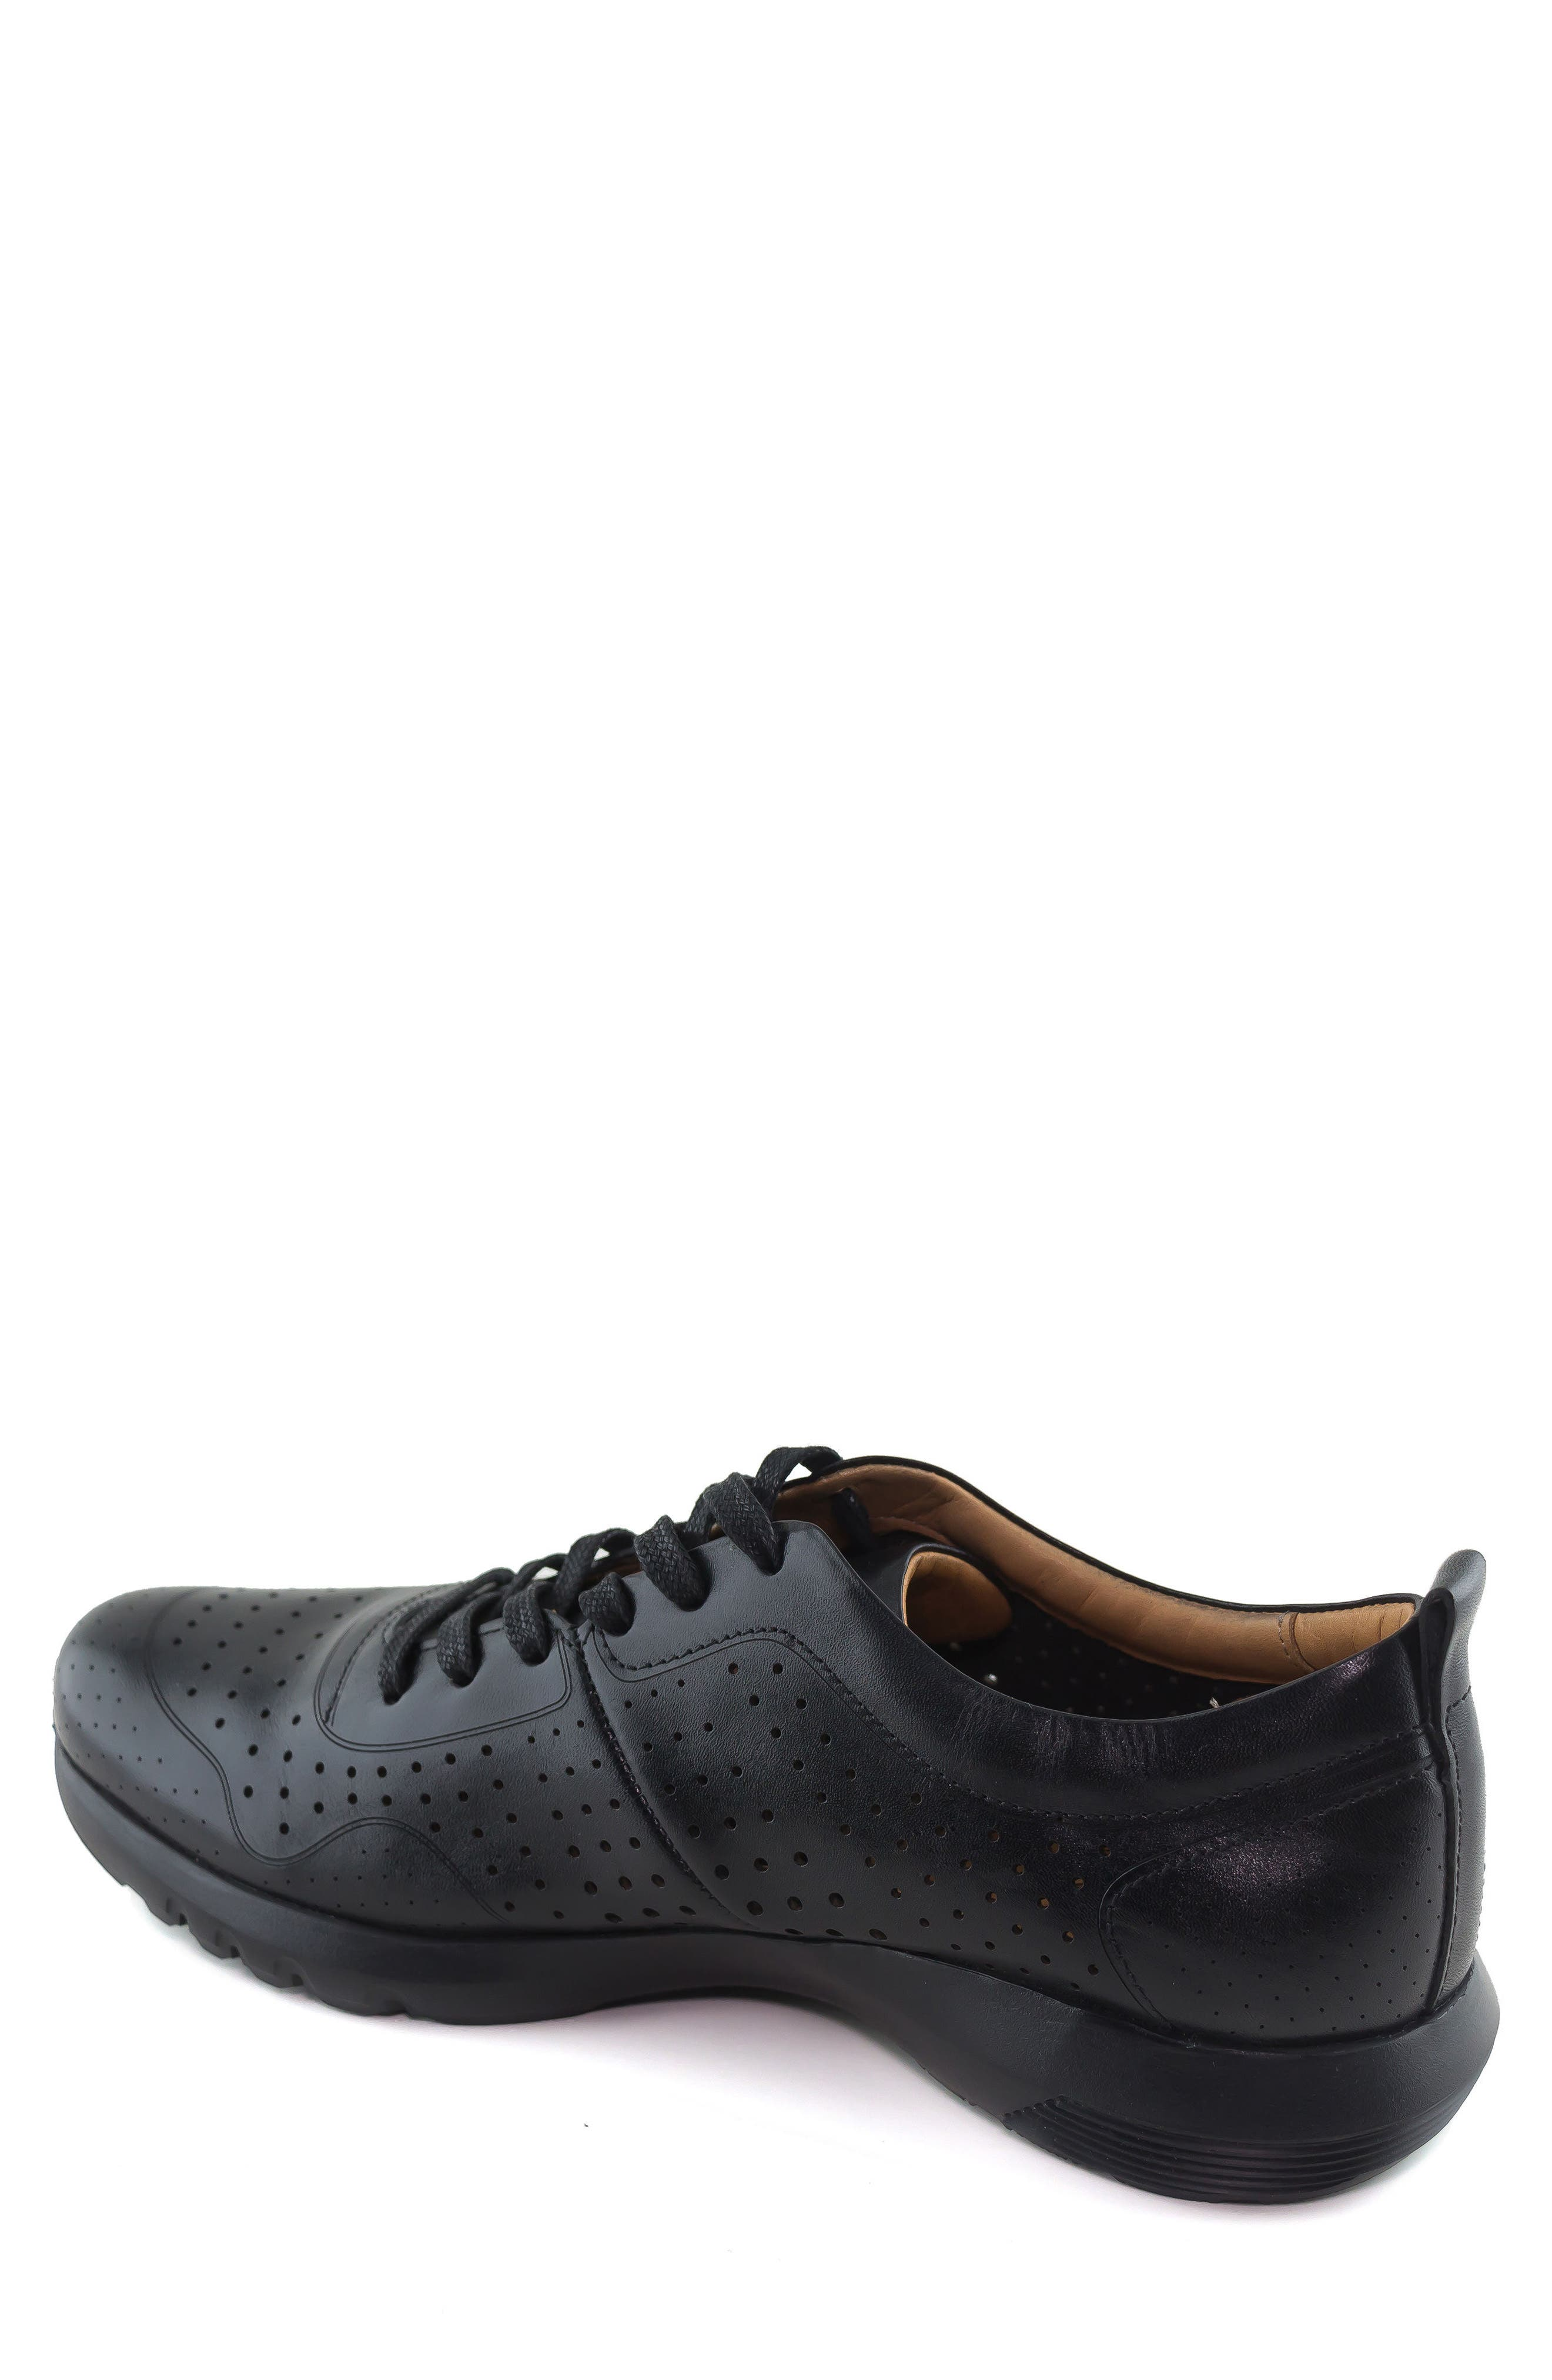 Grand Central Perforated Sneaker,                             Alternate thumbnail 2, color,                             BLACK